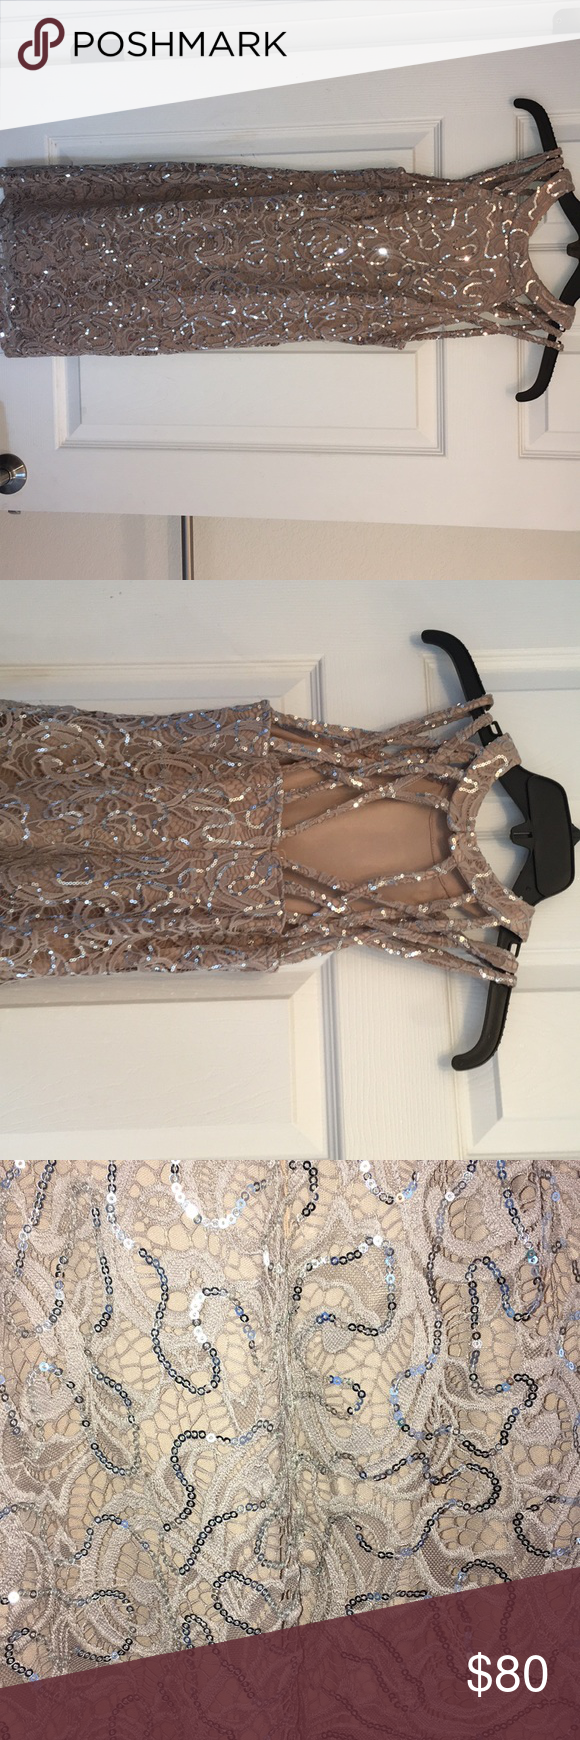 Dillard's dress Only worn one time, bought this for a wedding. Dresses